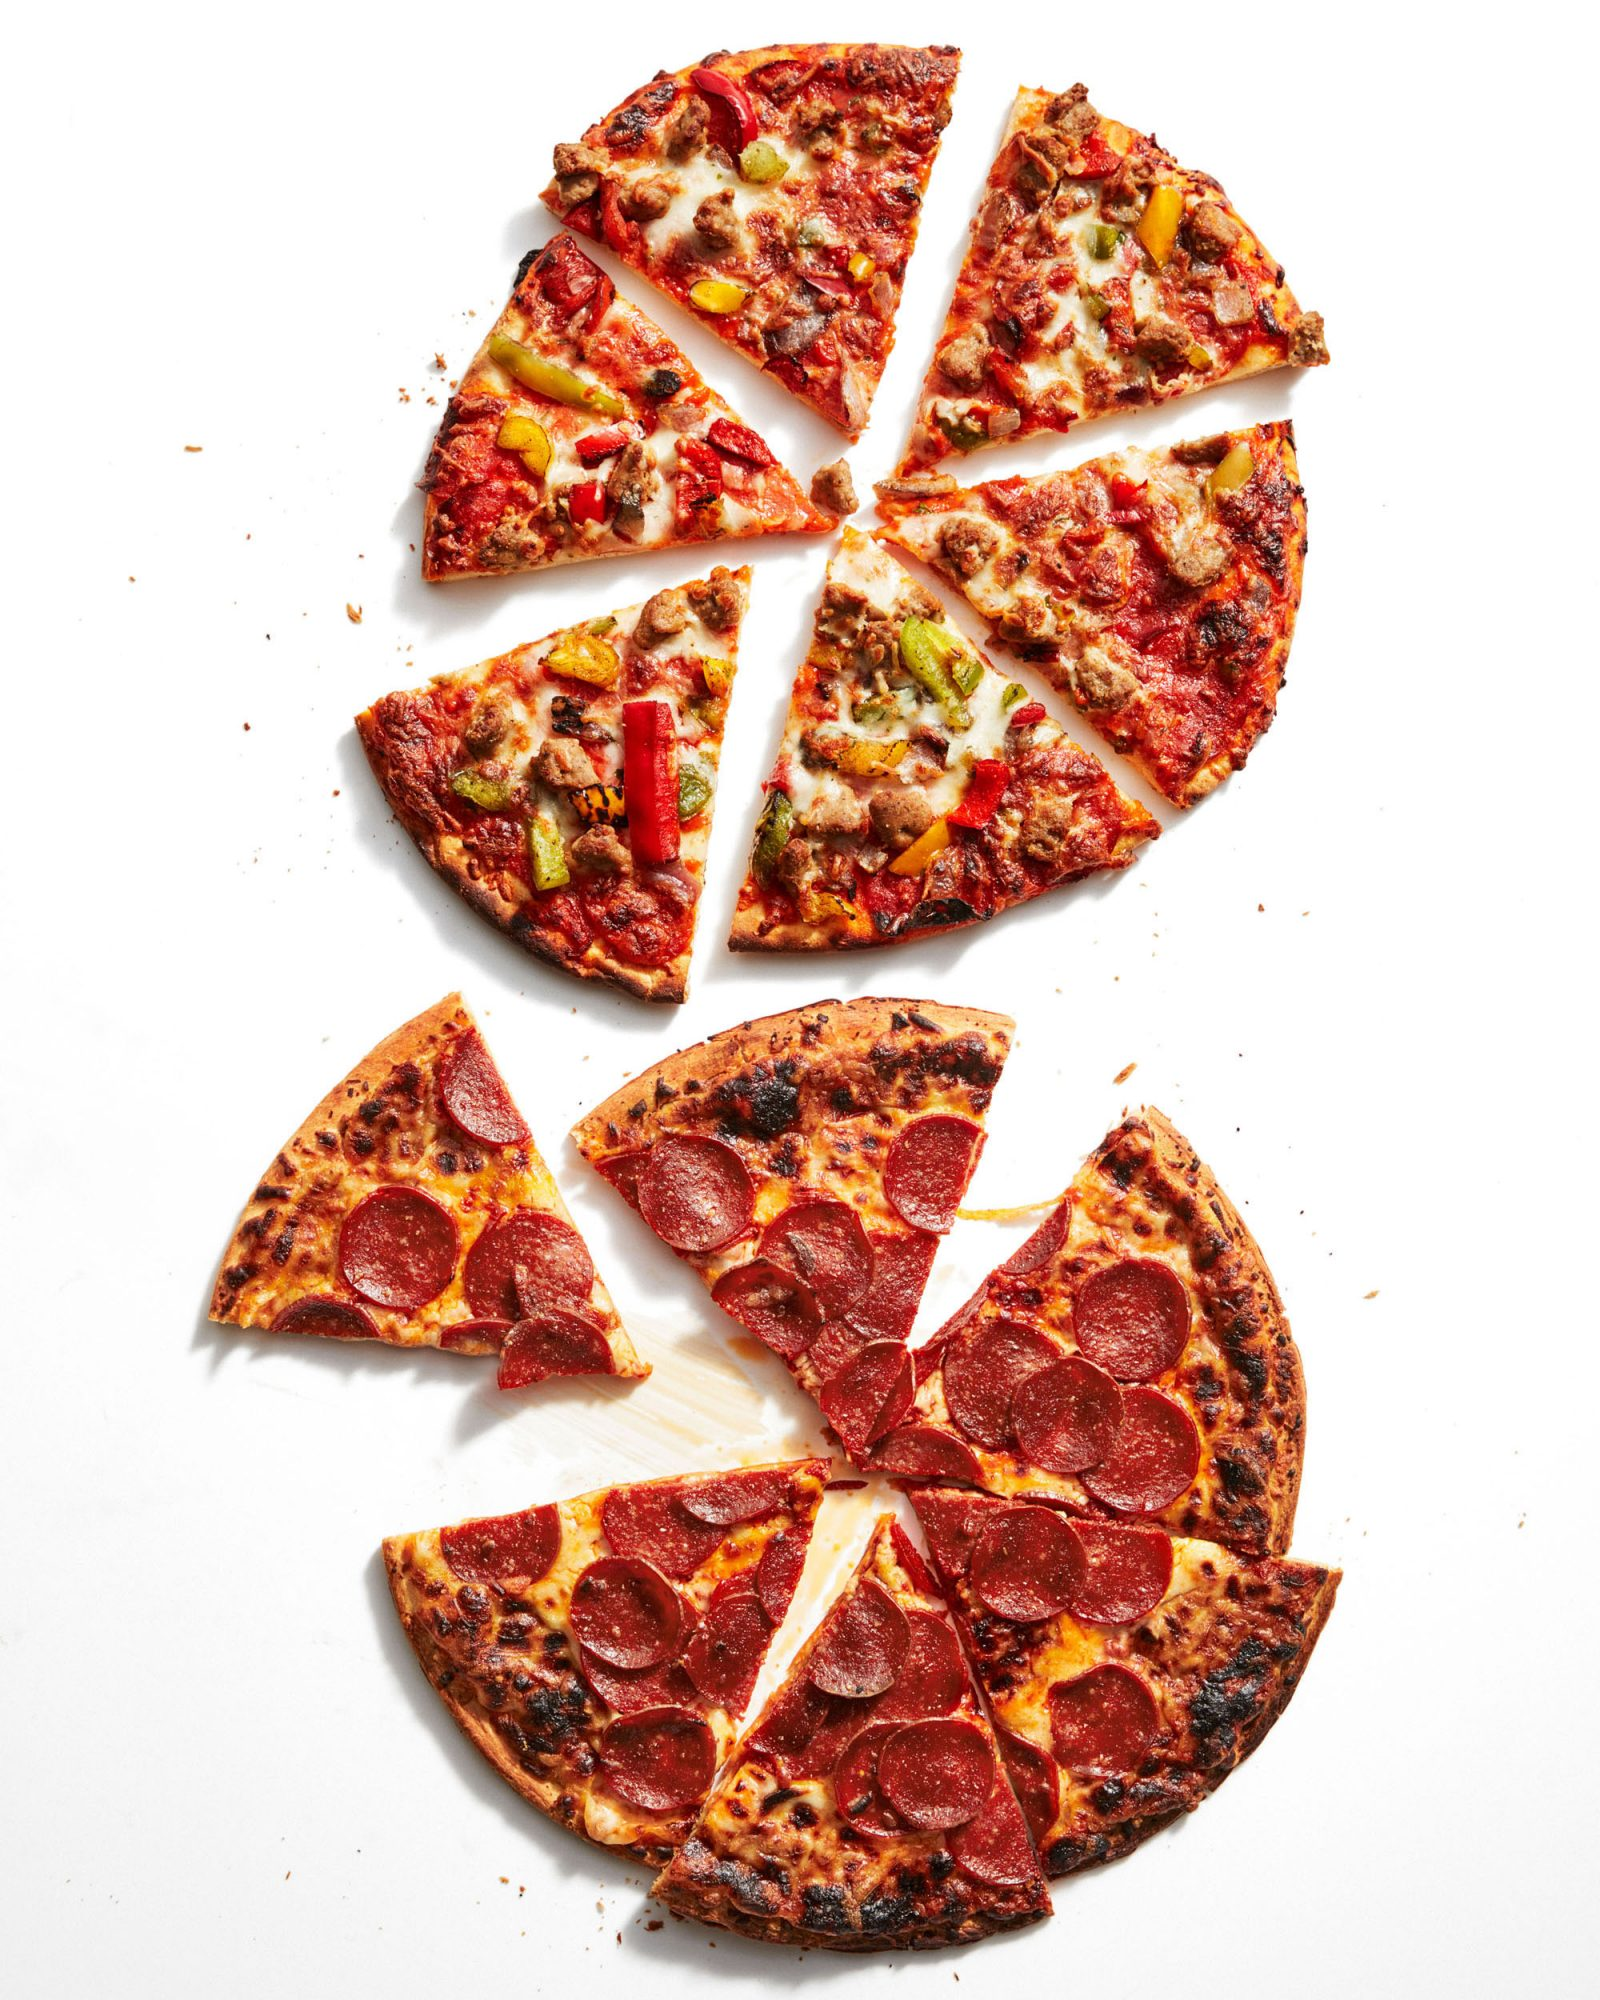 two frozen pizzas sliced